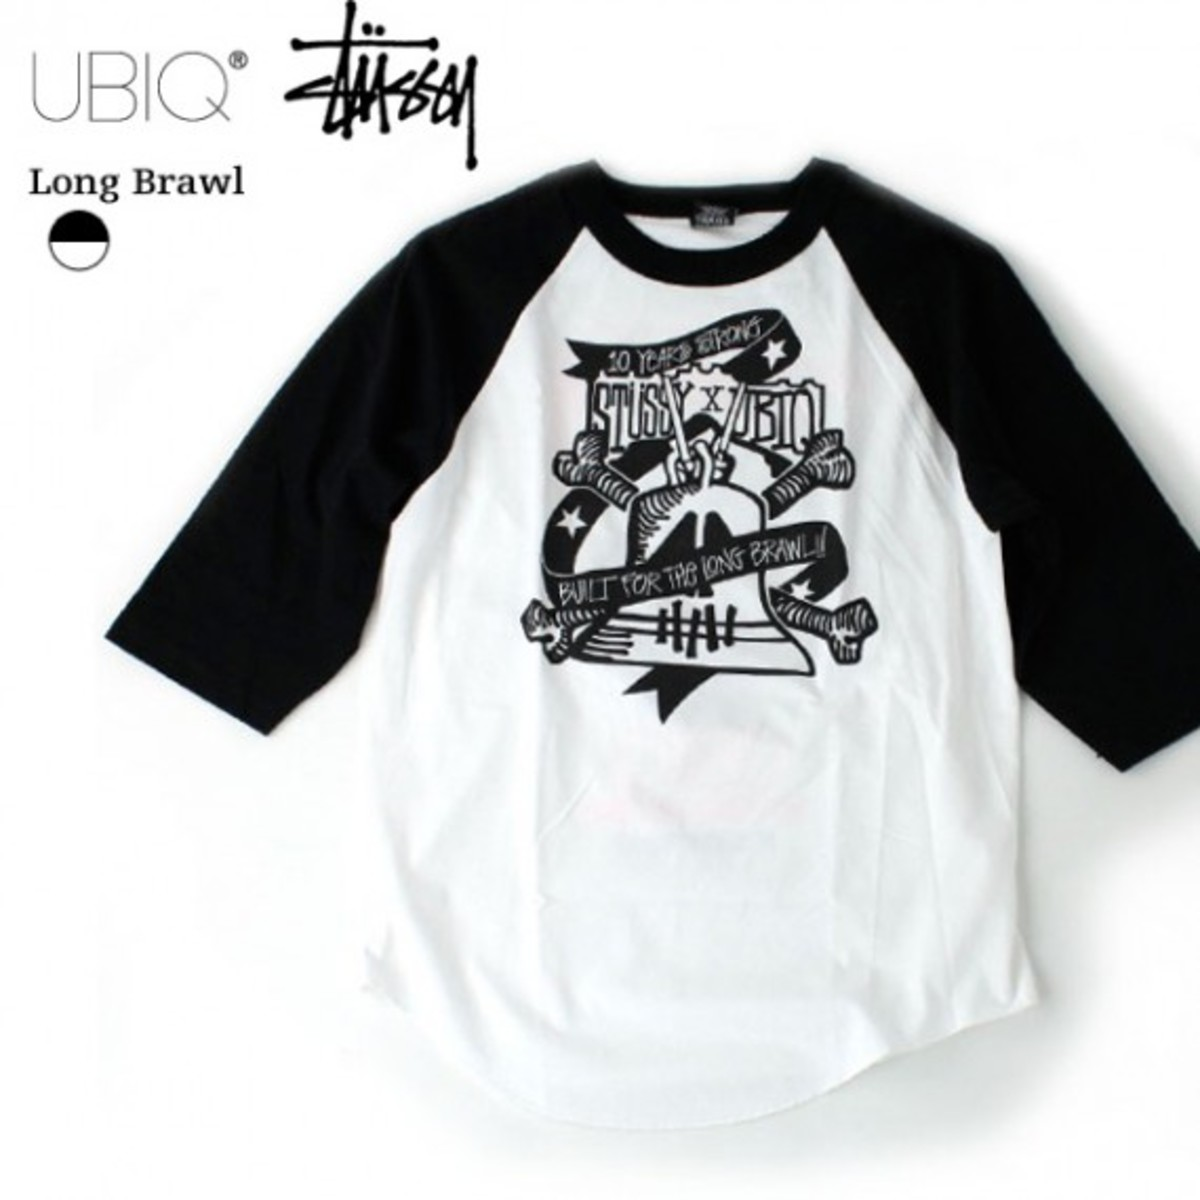 stussy-ubiq-10th-annversary-t-shirt-collection-04